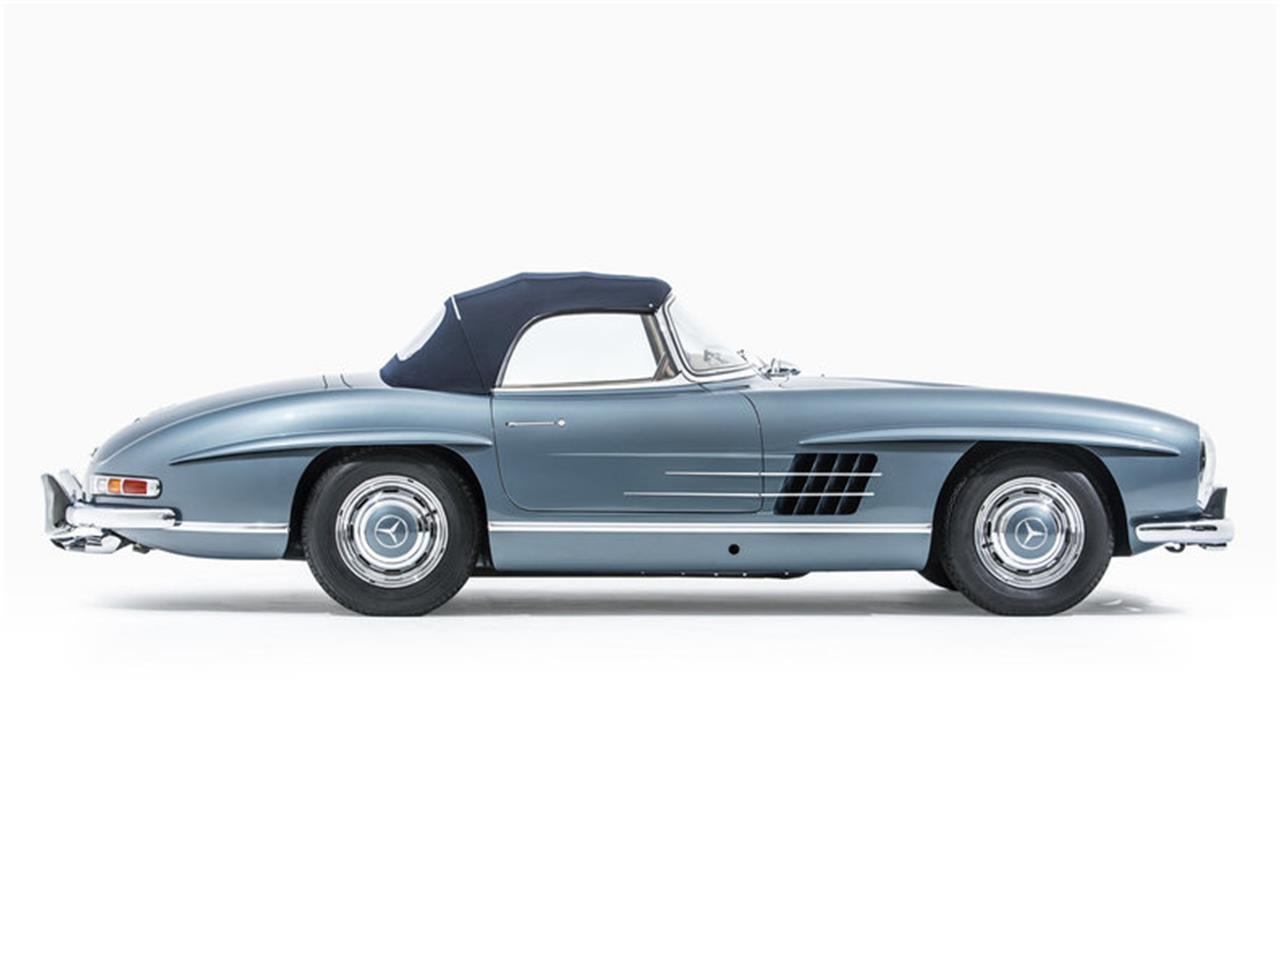 Large Picture of '58 Mercedes-Benz 300SL located in California Auction Vehicle Offered by Morris and Welford - MZA8